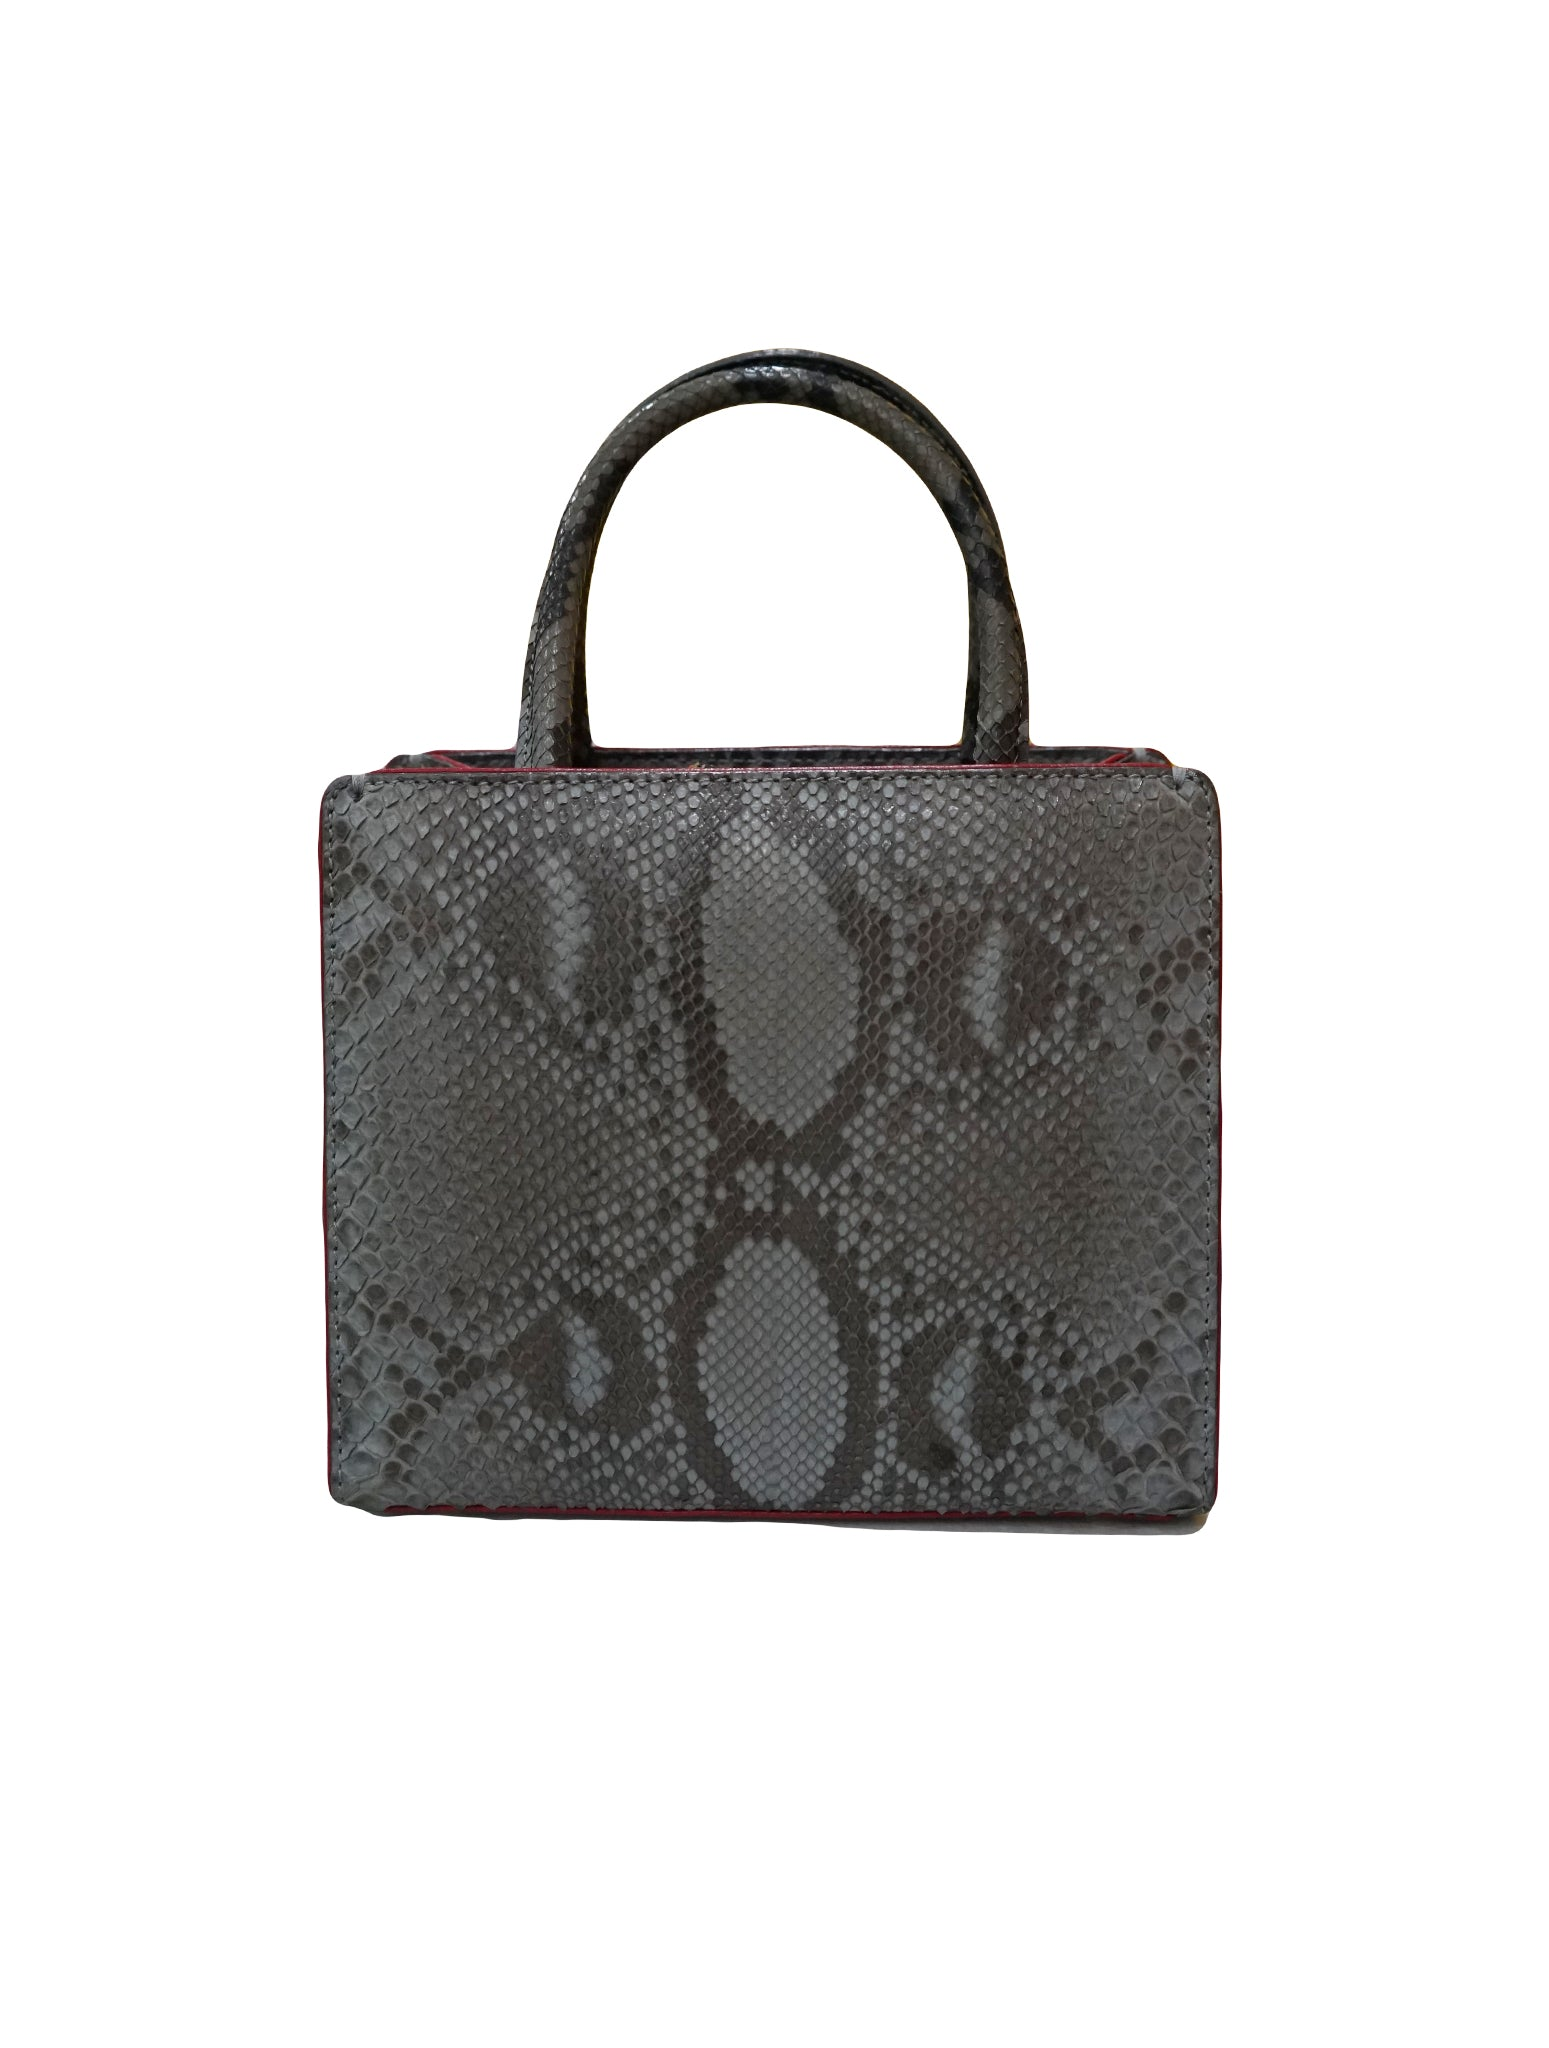 PYTHON MINI SWEET BOX SATCHEL BAG